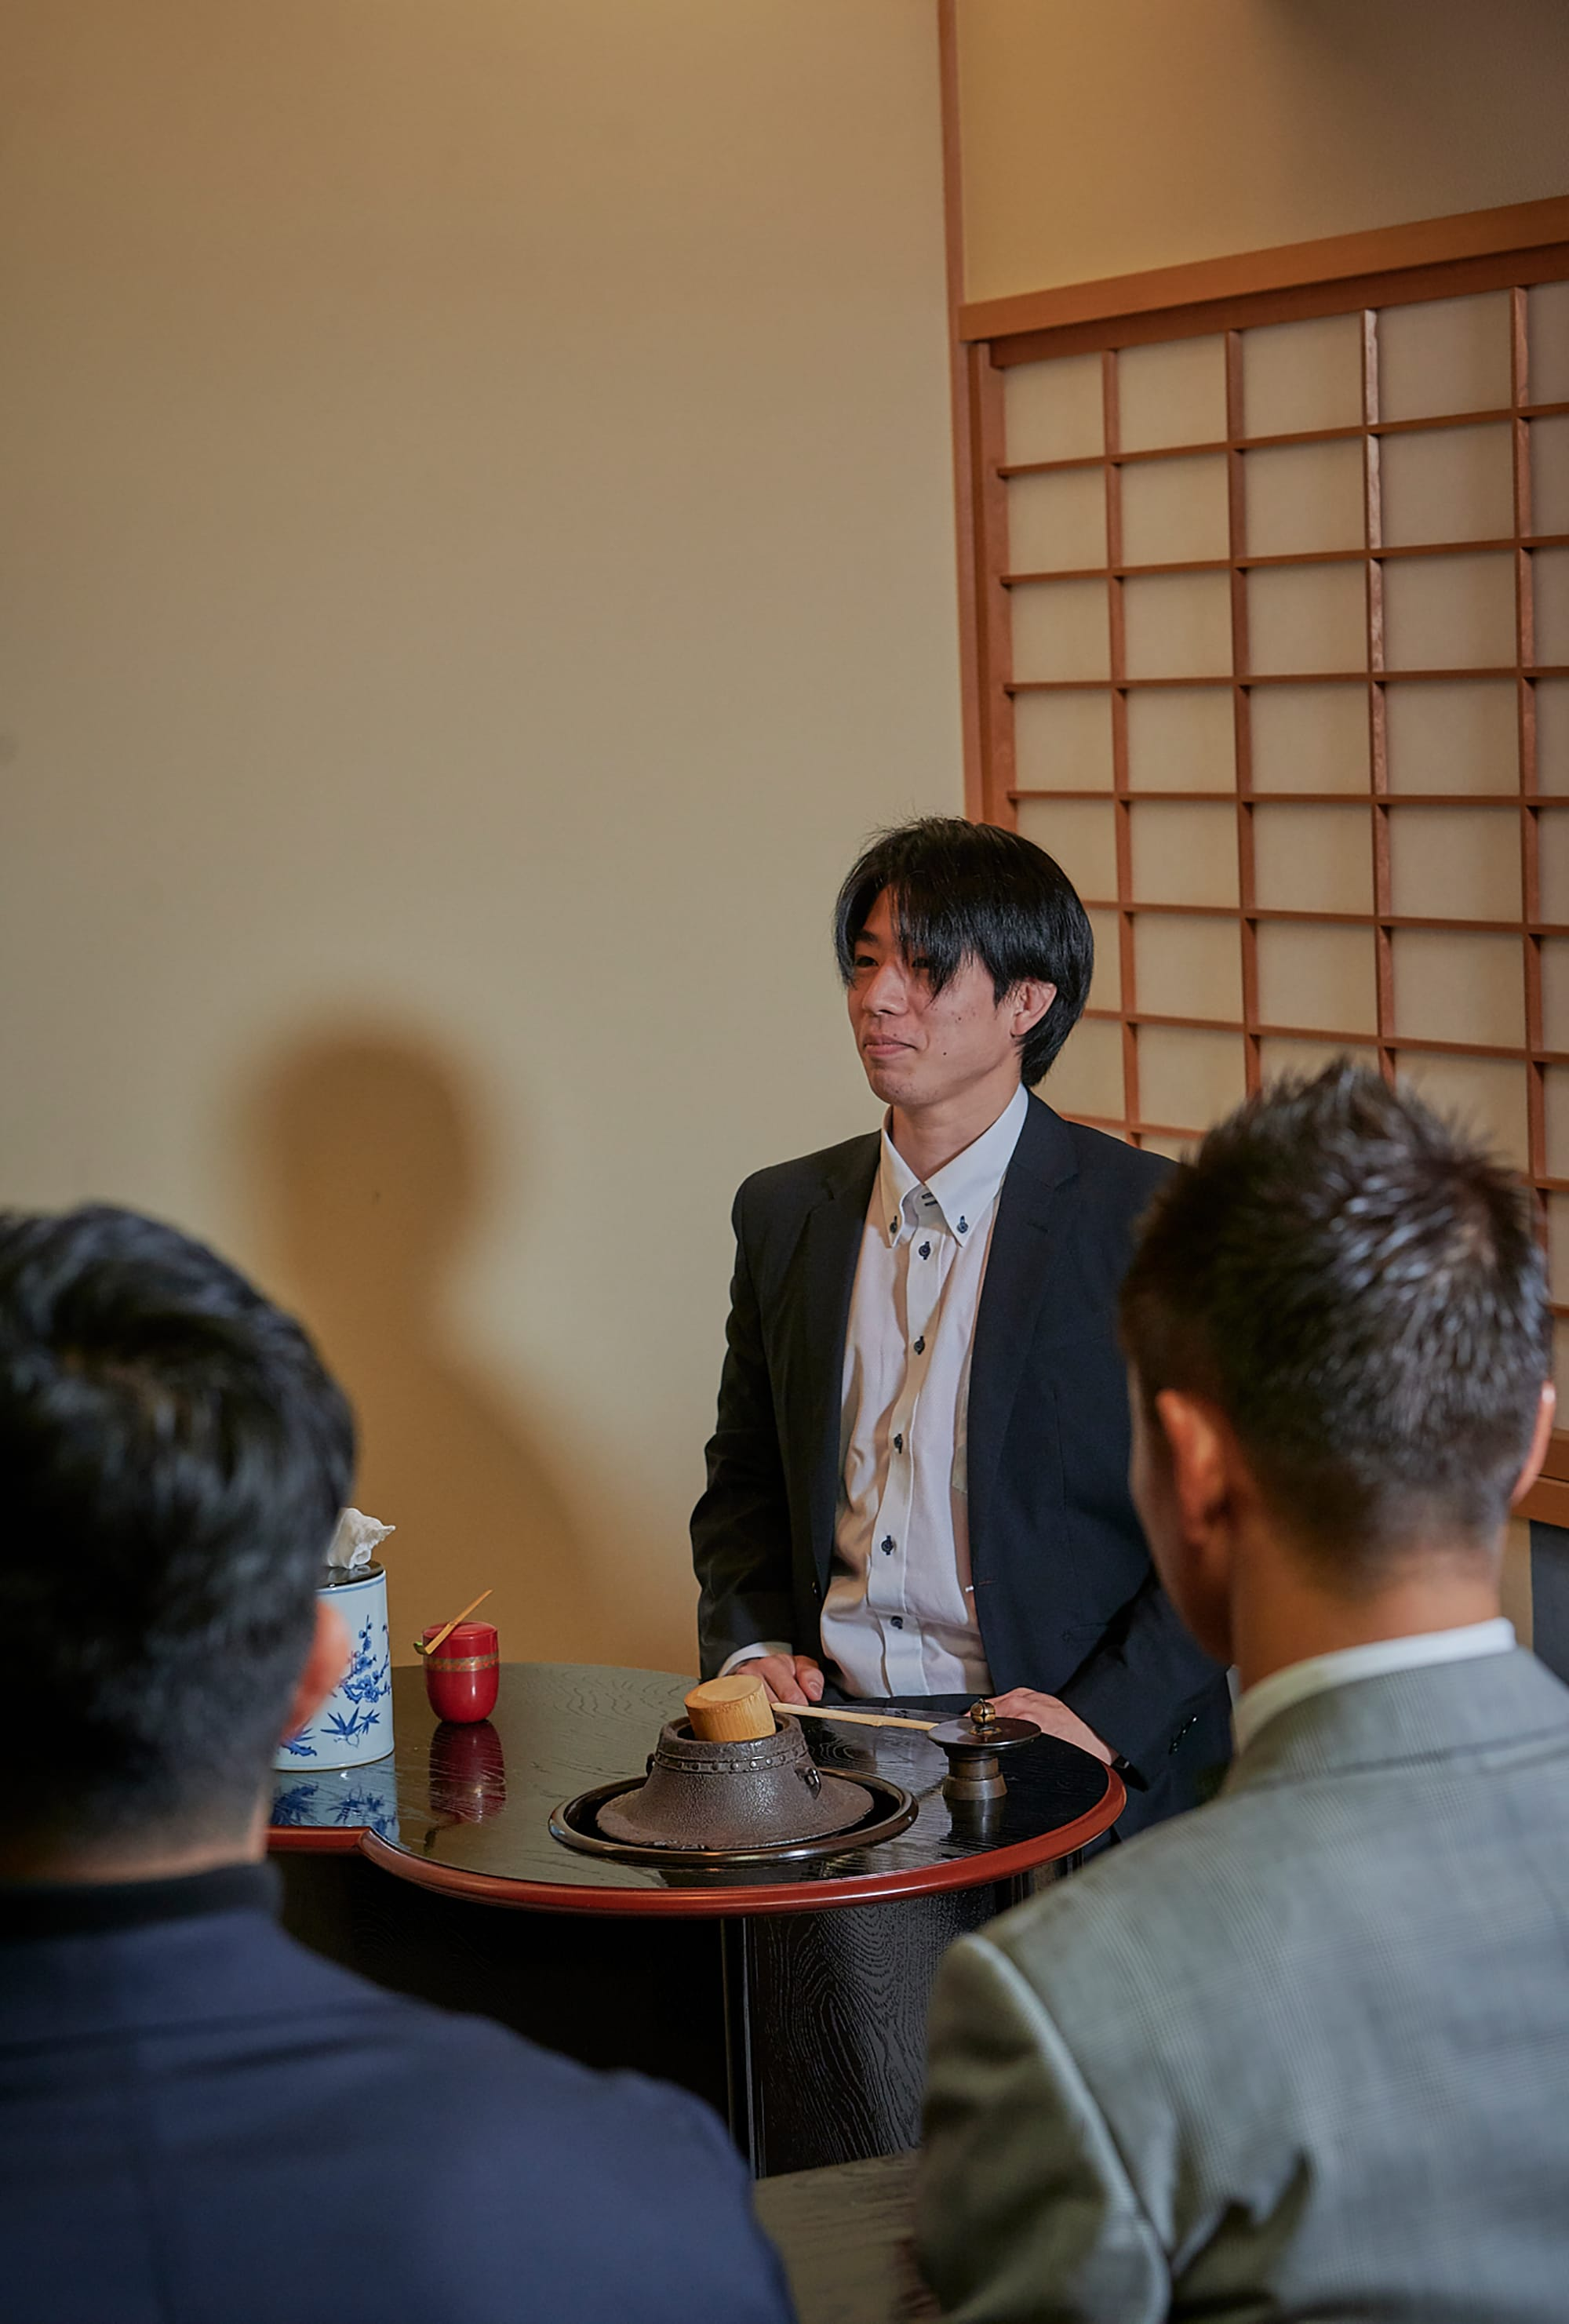 YUUTAROU was able to learn the shosa of tea ceremony and made it his own through watching the other athletes' shosa.